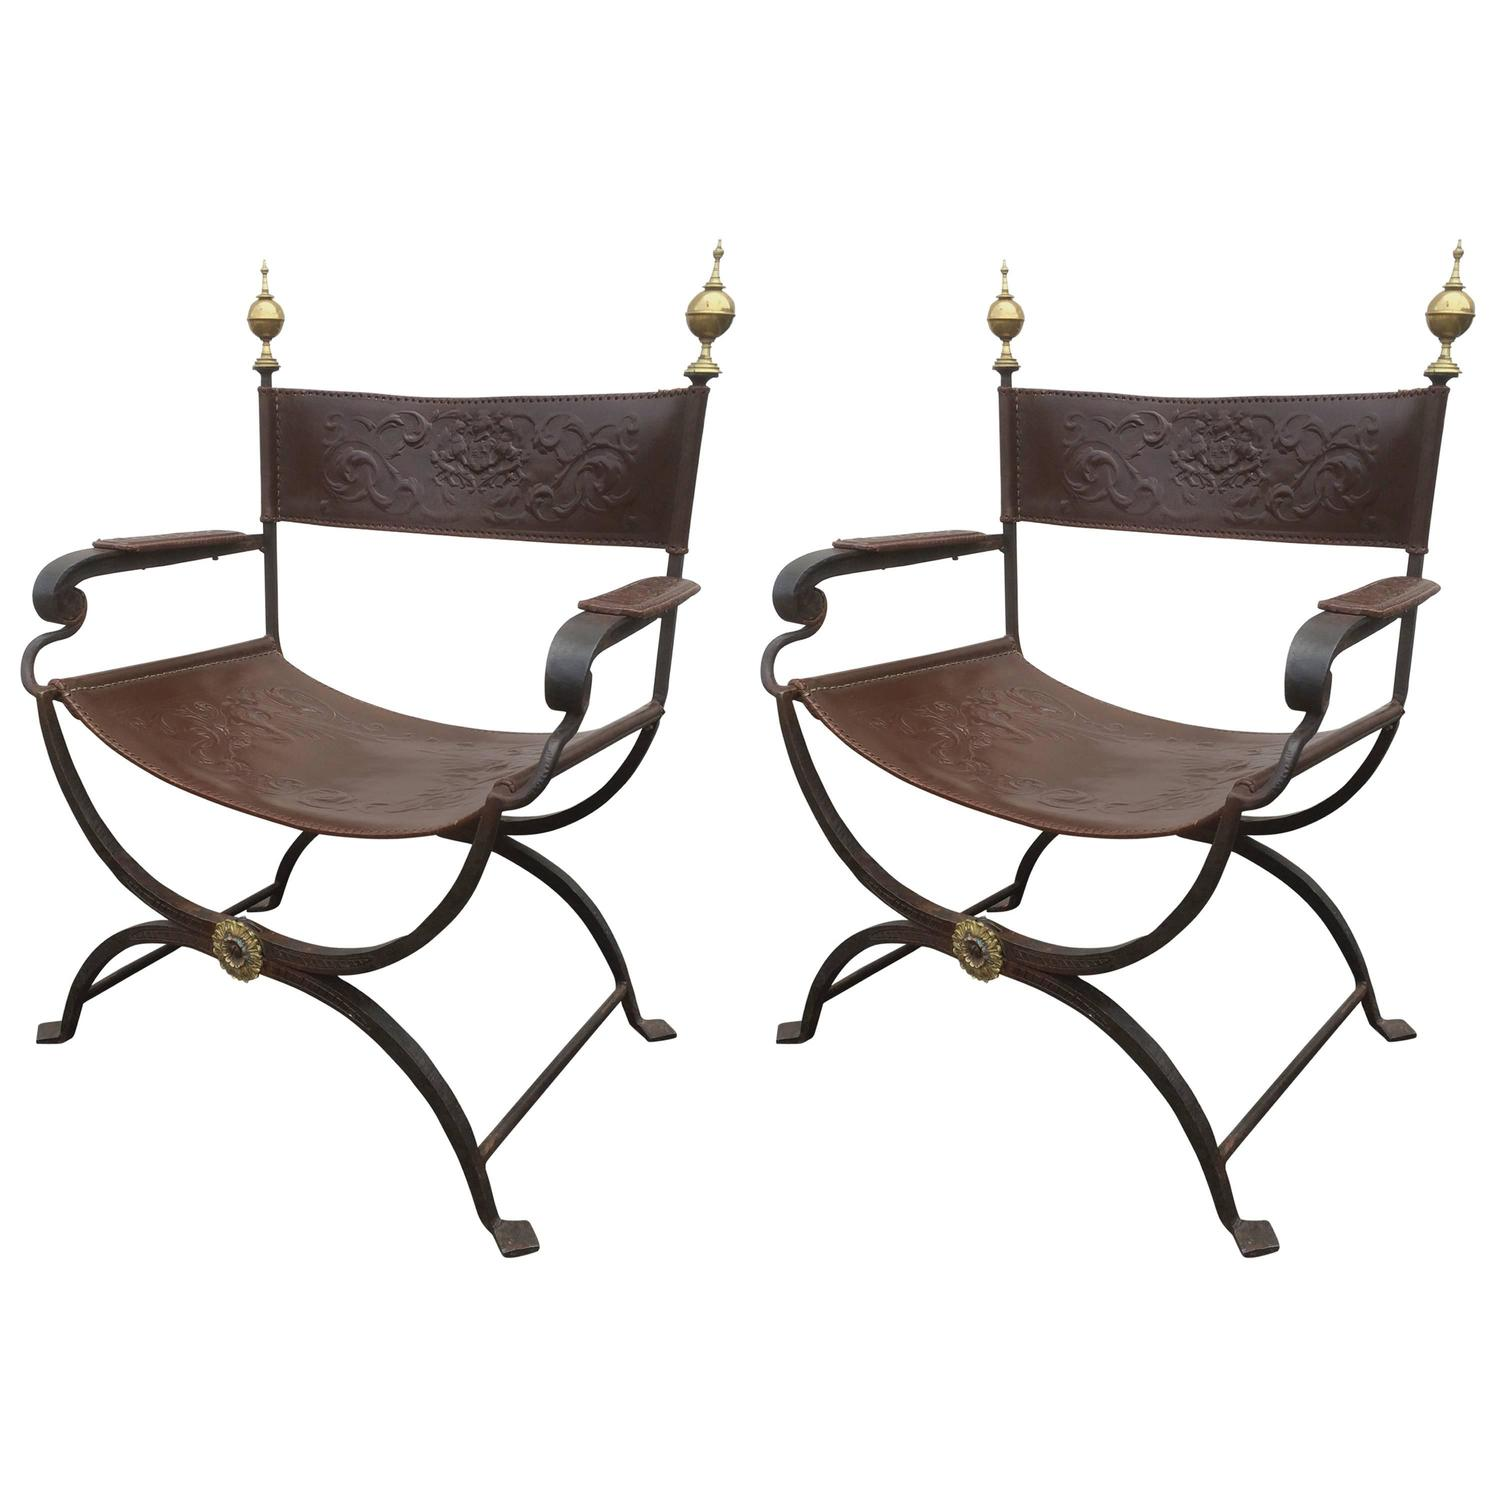 Pair of Wrought Iron Curule Chairs For Sale at 1stdibs